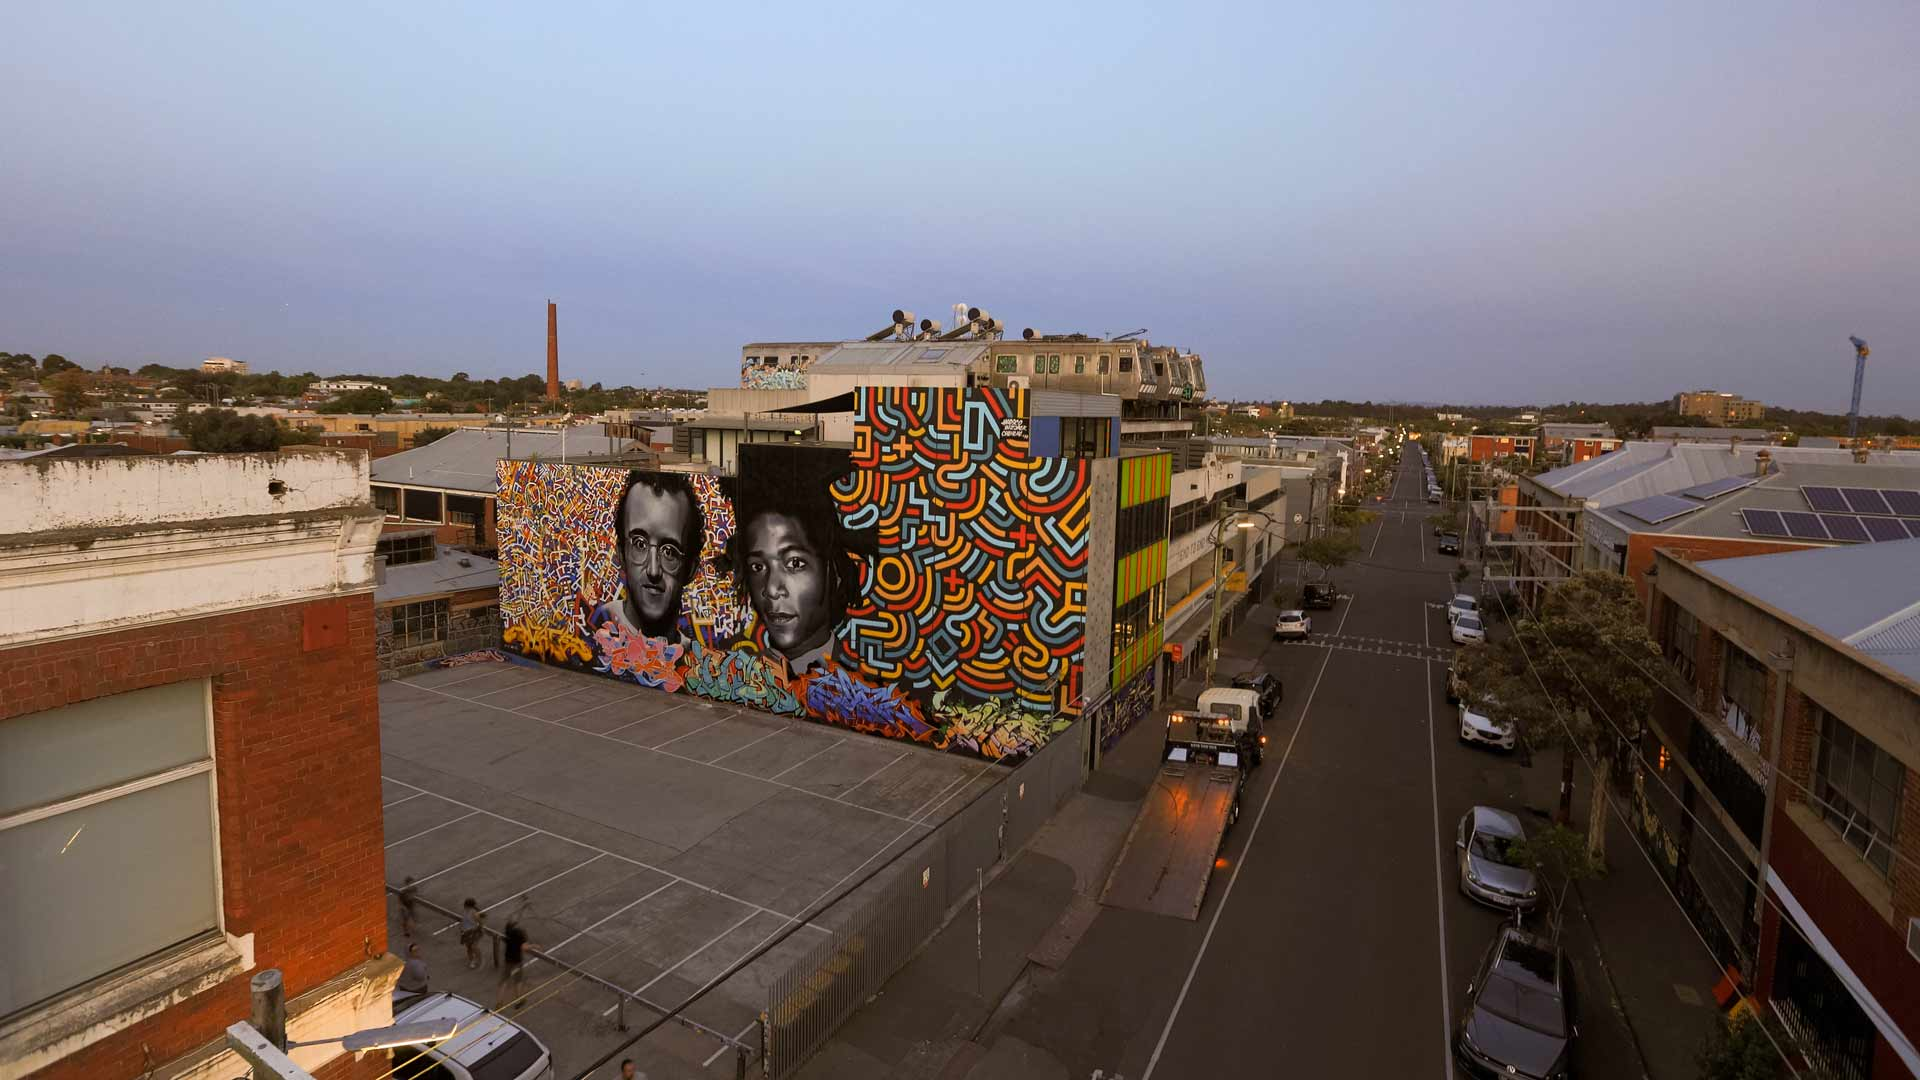 Collingwood Has a New 30-Metre-Wide Mural Dedicated to Keith Haring and Jean-Michel Basquiat